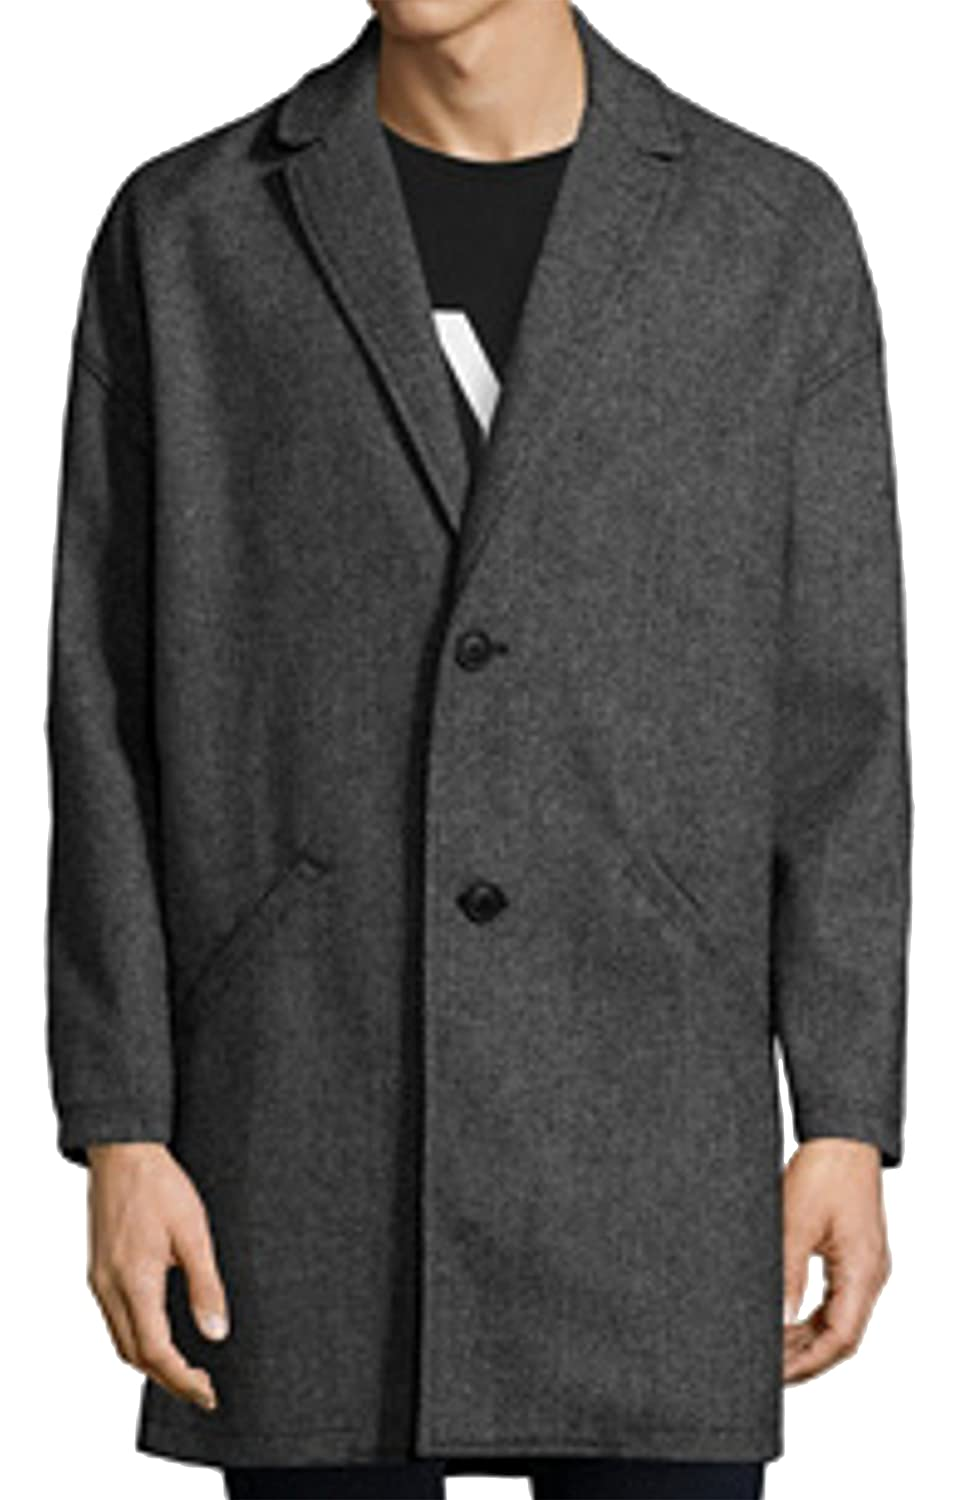 Bershka Menswear Wool-Blend Classic Cut Men's Coat Black Light Grey Herringbone Tailored Collar Winter Coat Medium Length 6433-848-802